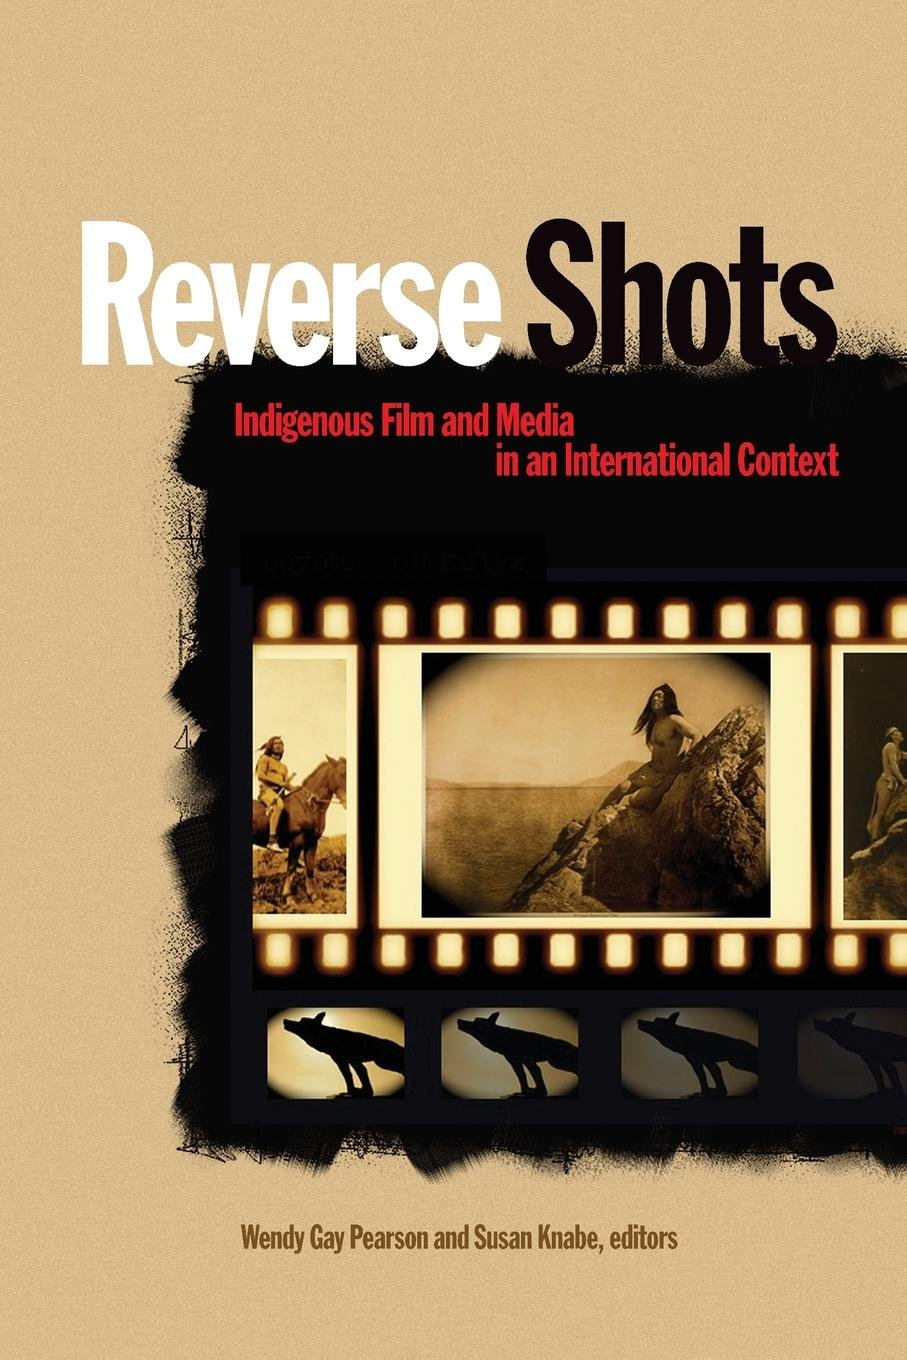 Reverse shots : indigenous film and media in an international context